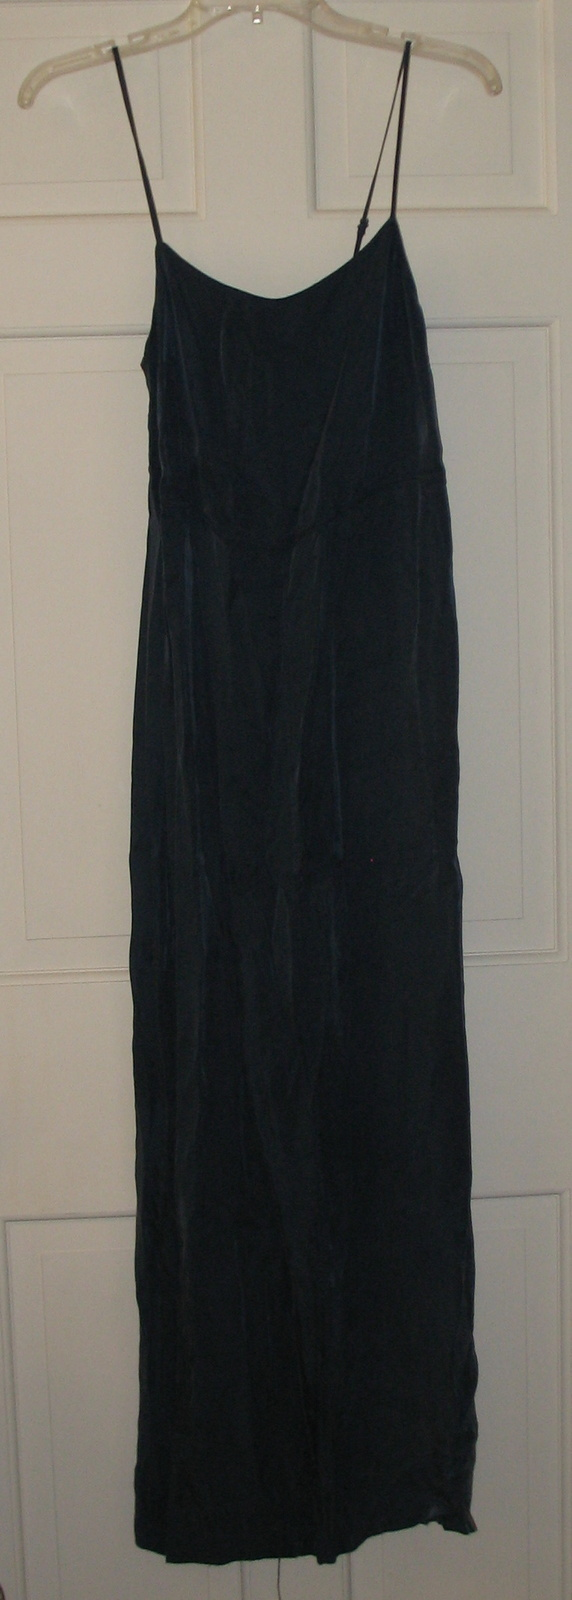 Express Midnight Blue Evening Cocktail Dress Sz 7/8